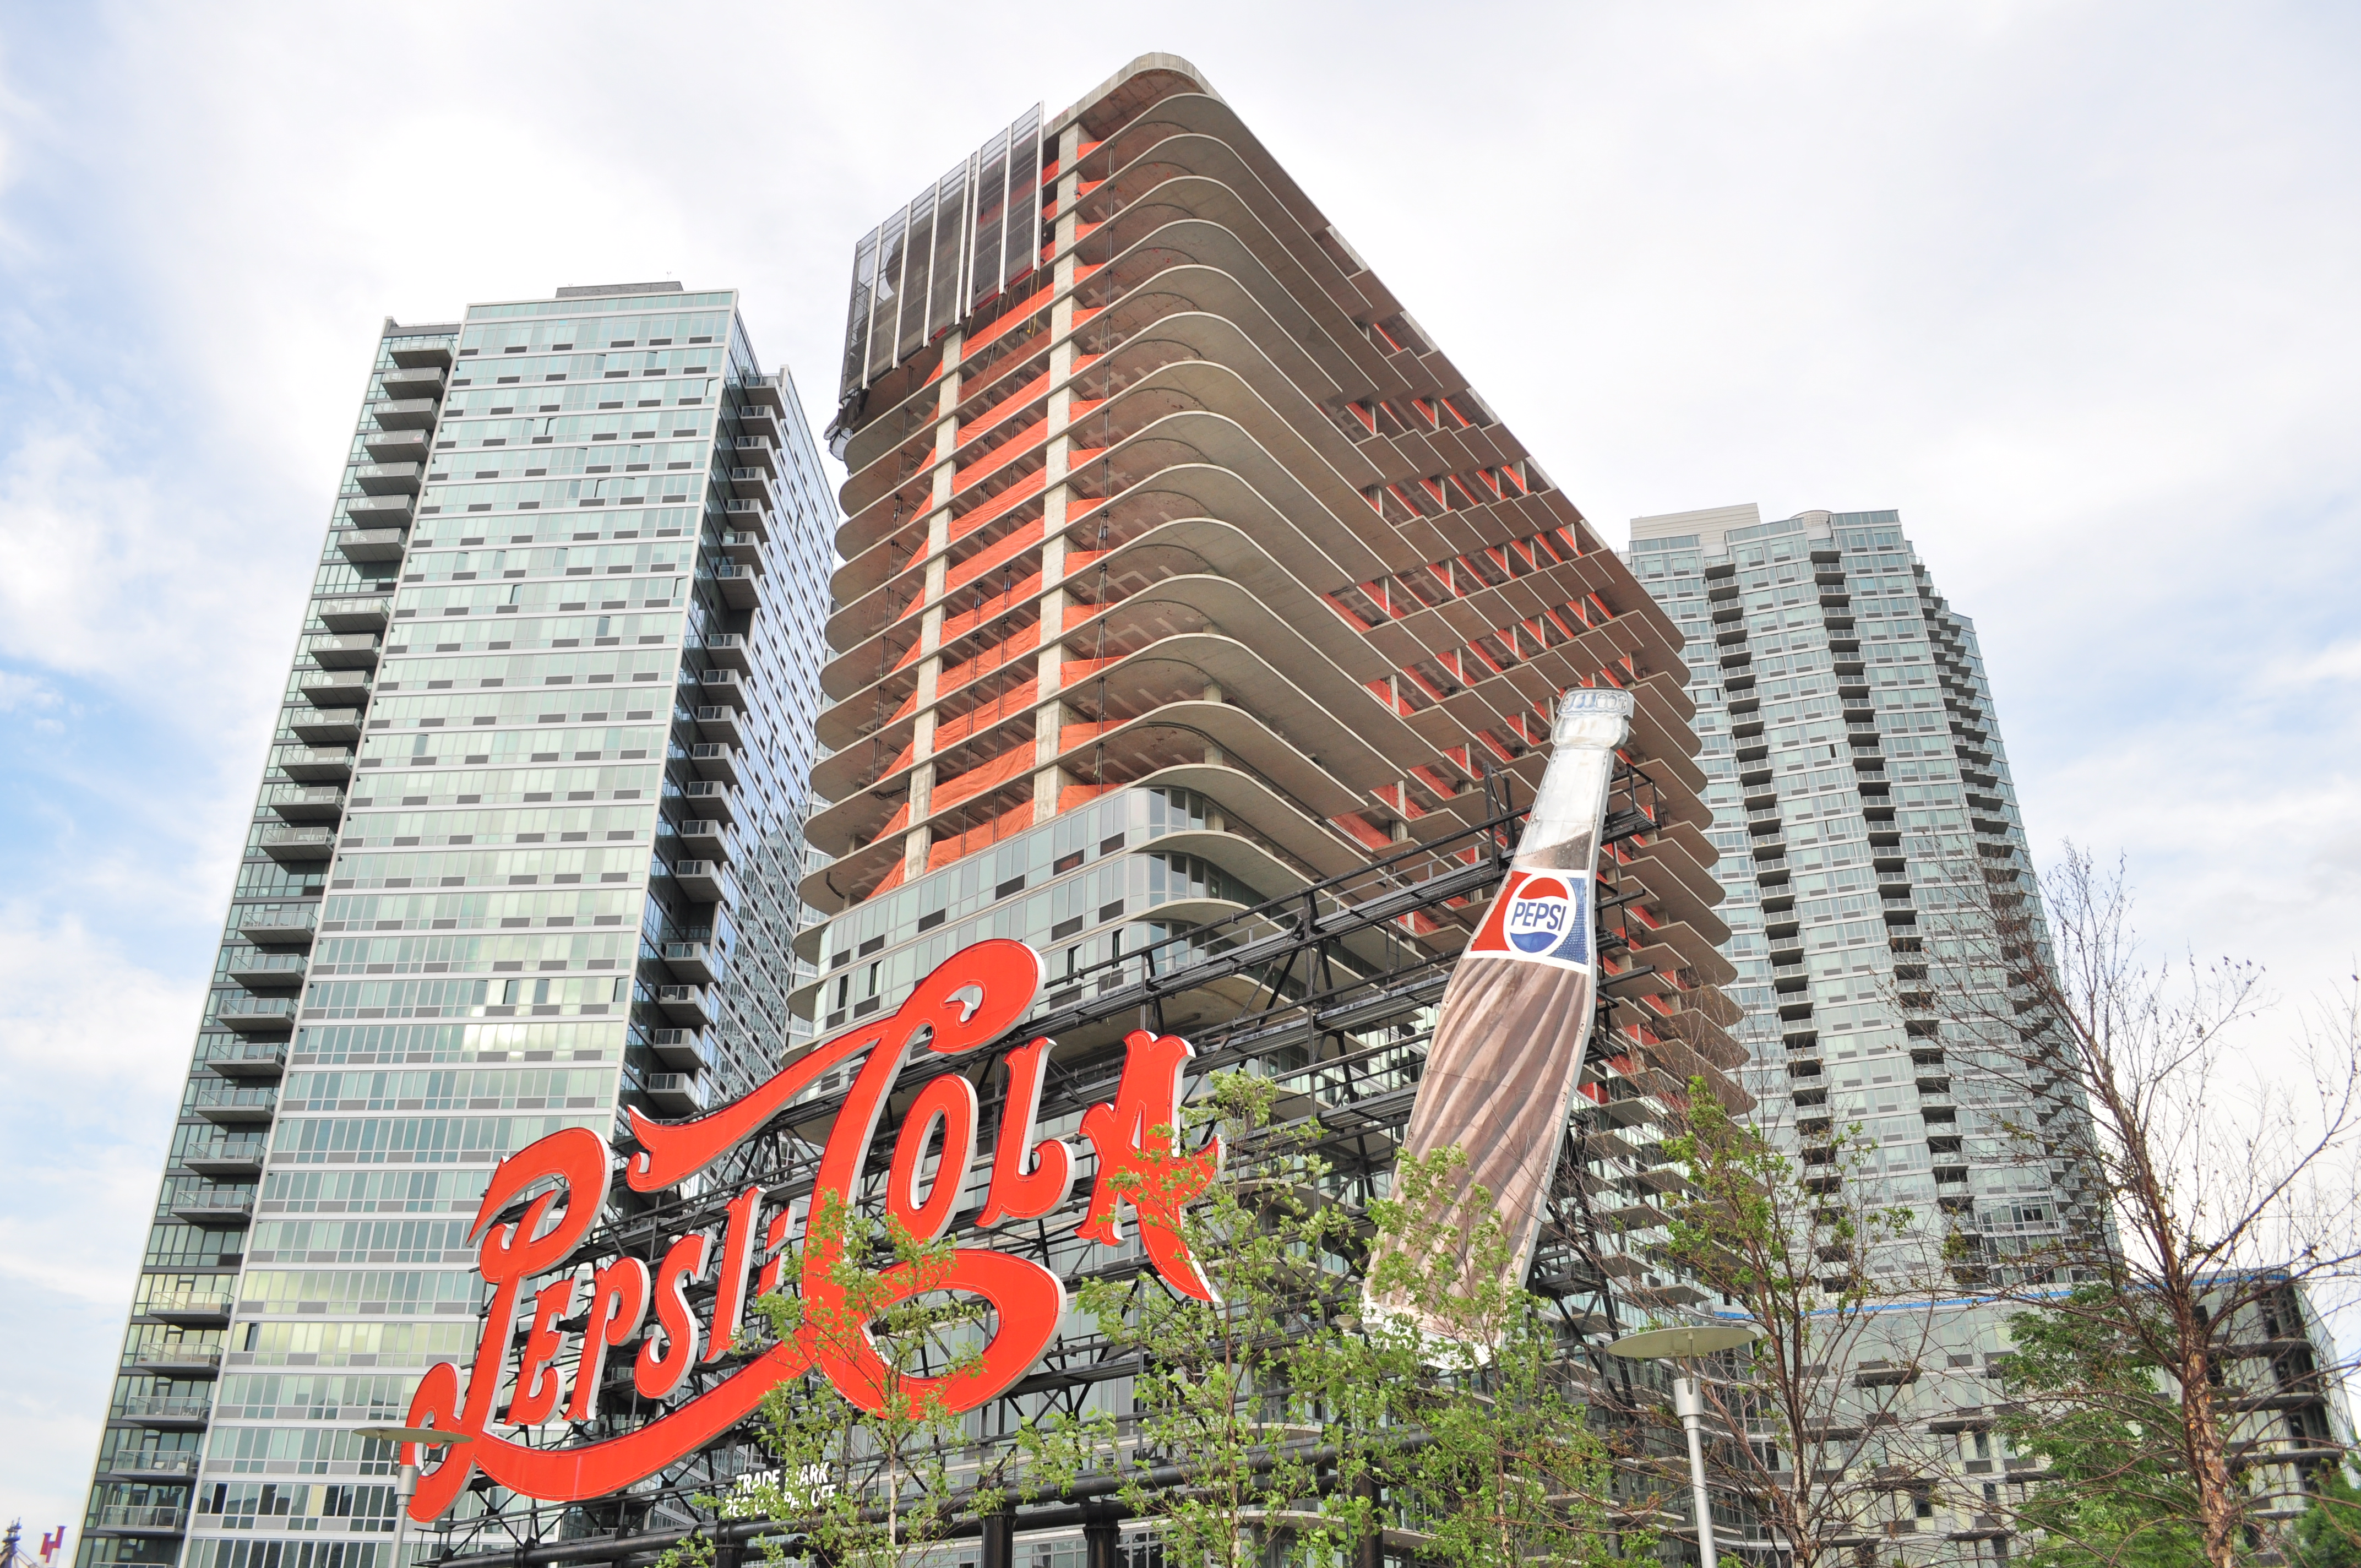 File Pepsicola Sign Gantry Plaza State Park Long Island City 02 9431662849 Jpg Wikimedia